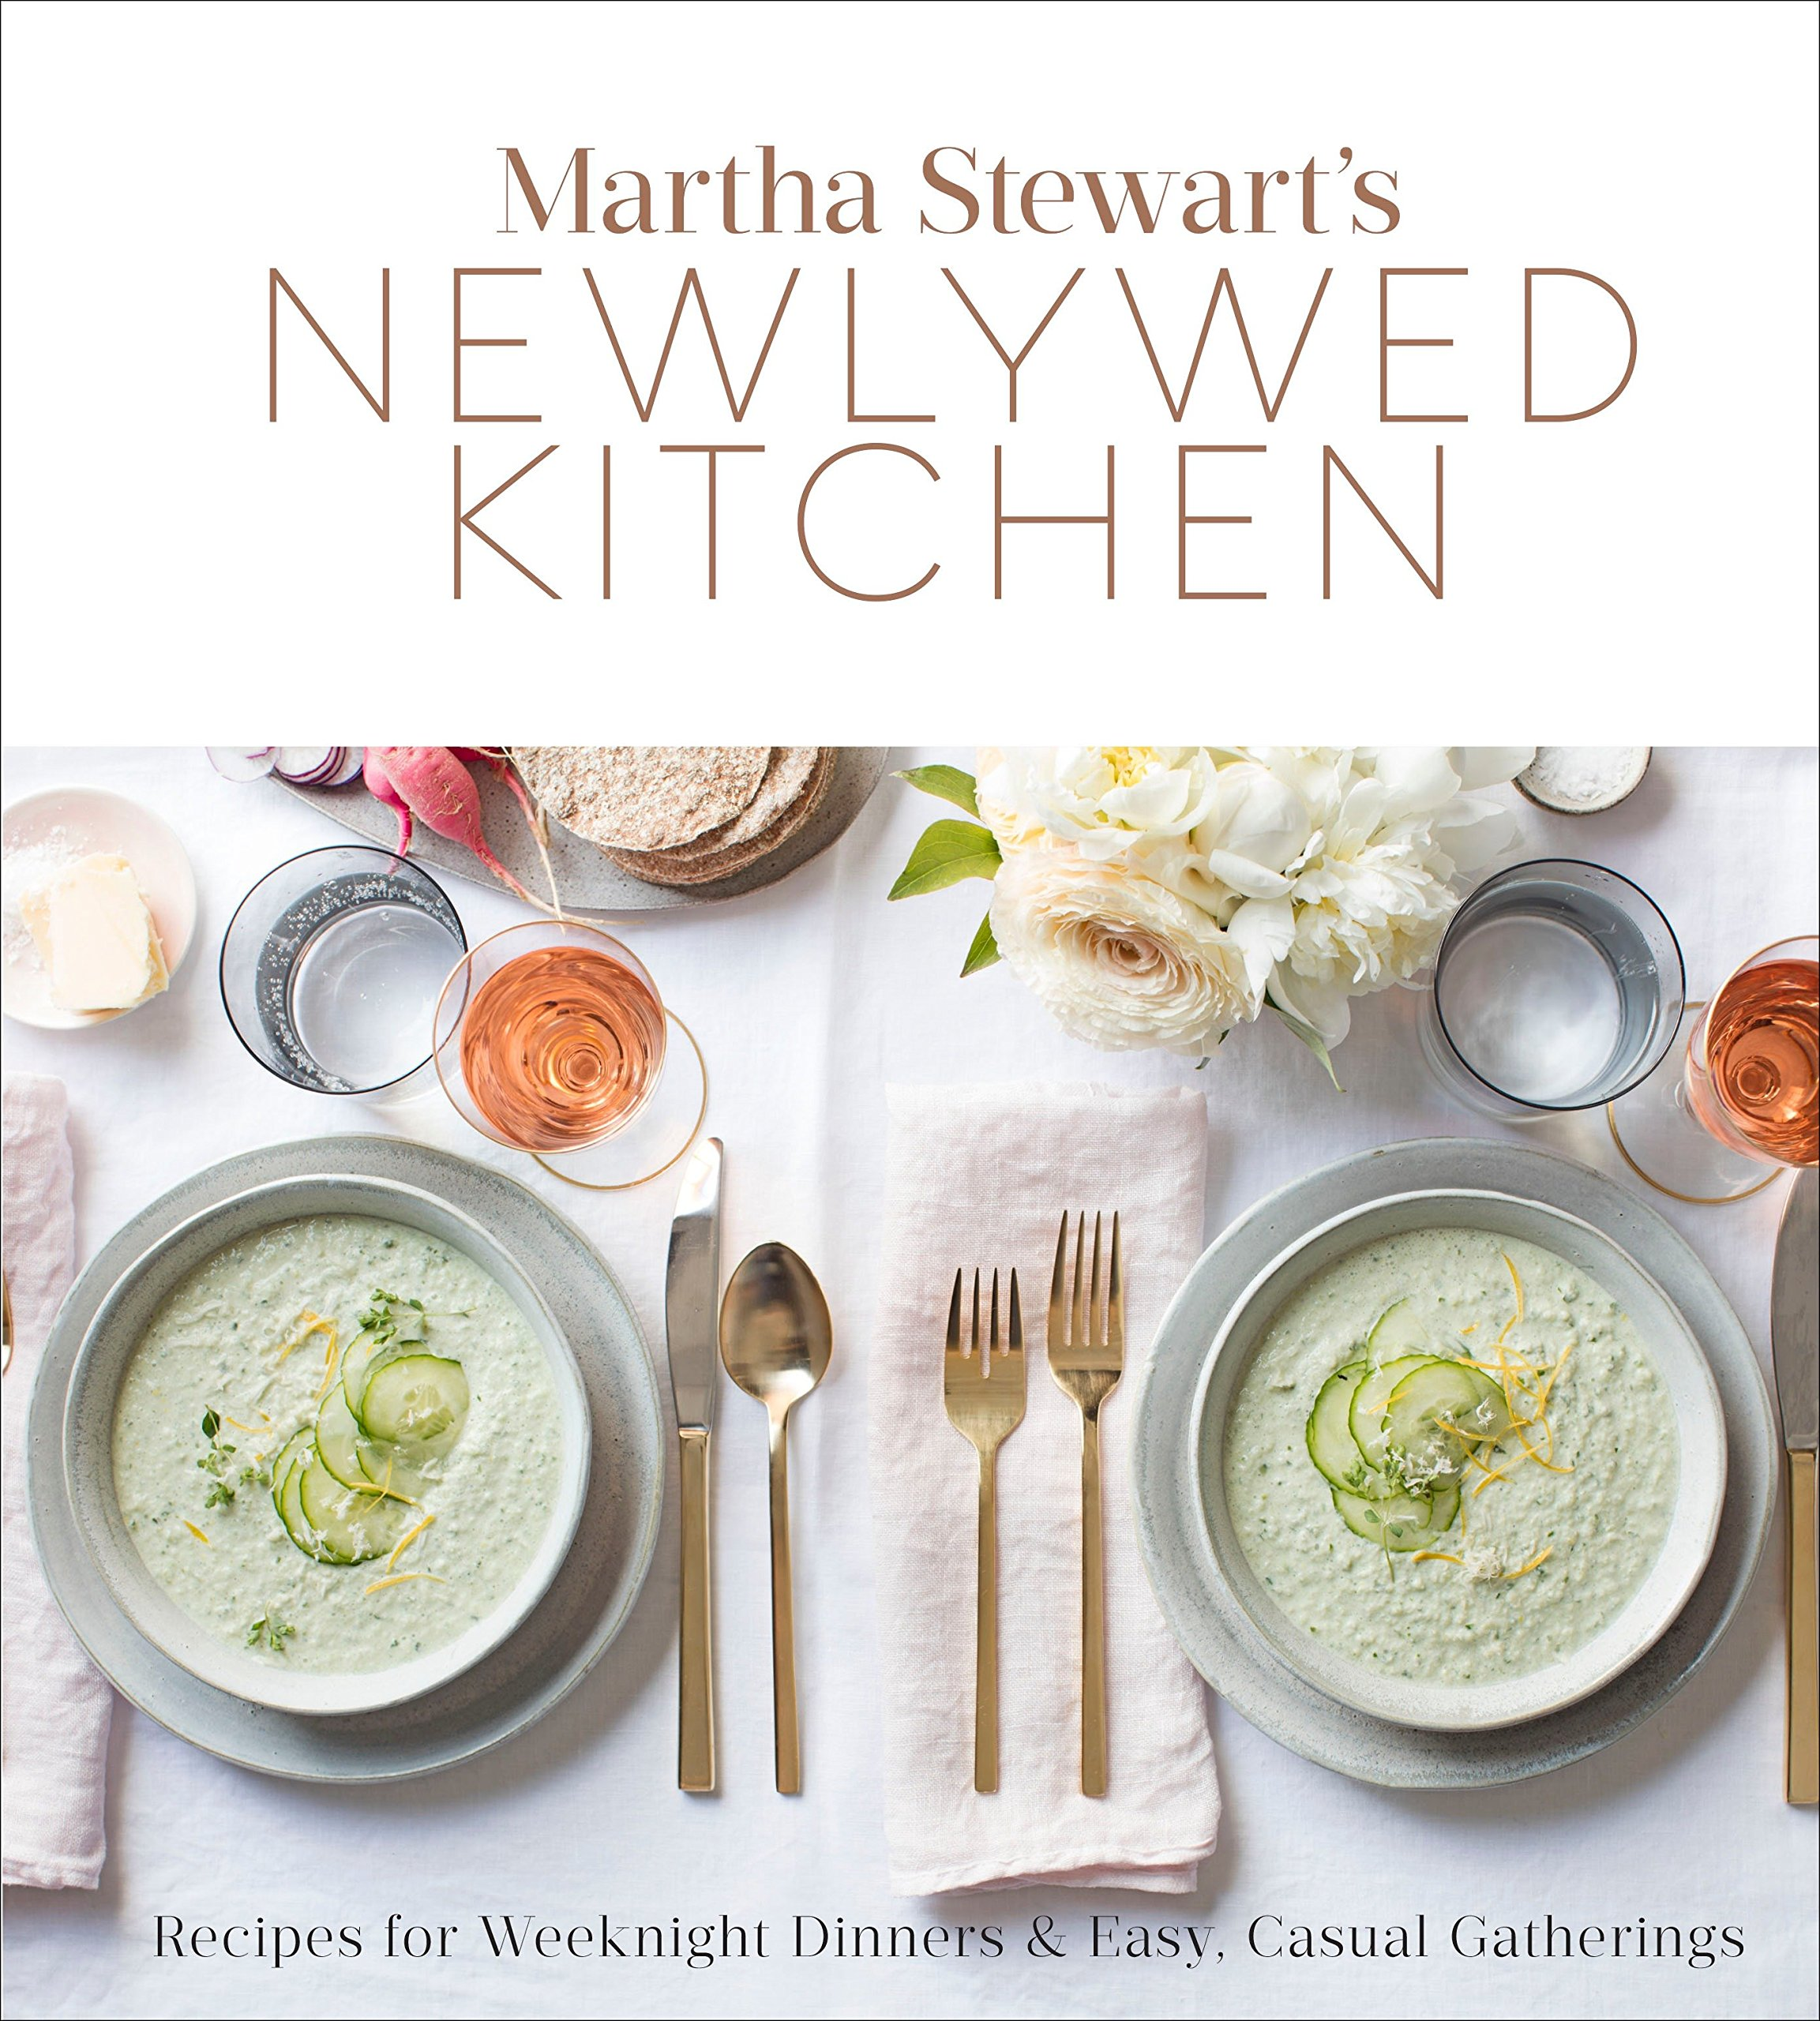 Martha Stewart's Newlywed Kitchen: Recipes for Weeknight Dinners and Easy, Casual Gatherings